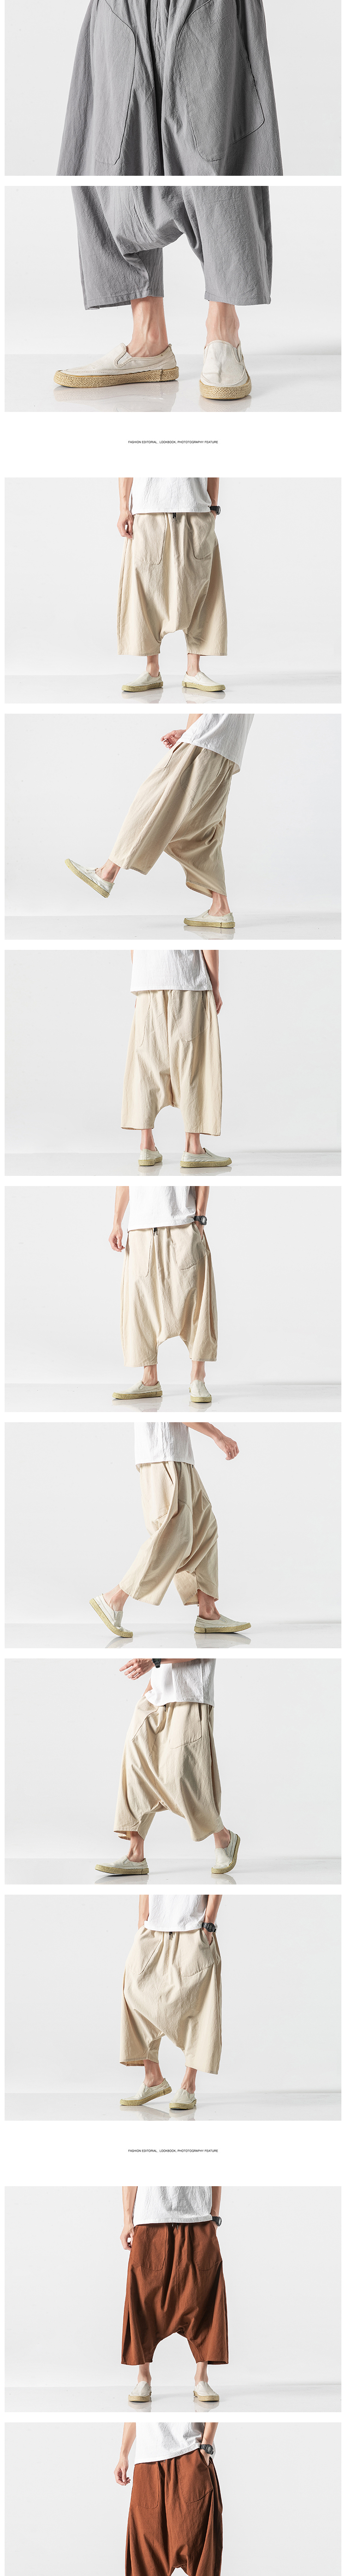 Sinicism Store Men Solid Summer Cross Pants Mens 2020 Japanese Wide Leg Trousers Male Linen Chinese Style Pants Clothing 5XL 29